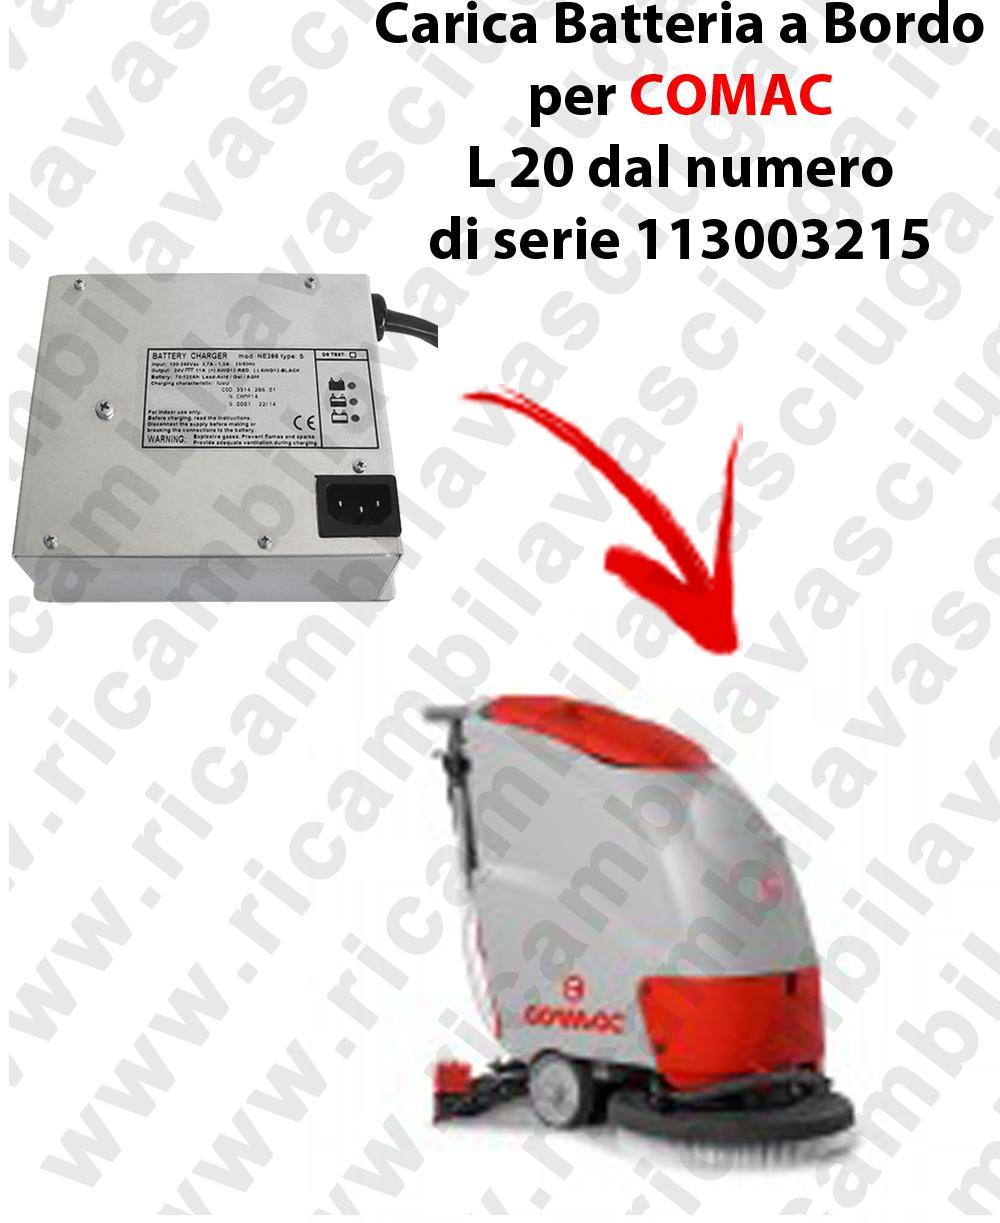 Onboard Battery Charger for scrubber dryer COMAC L 20 from serial number 113003215